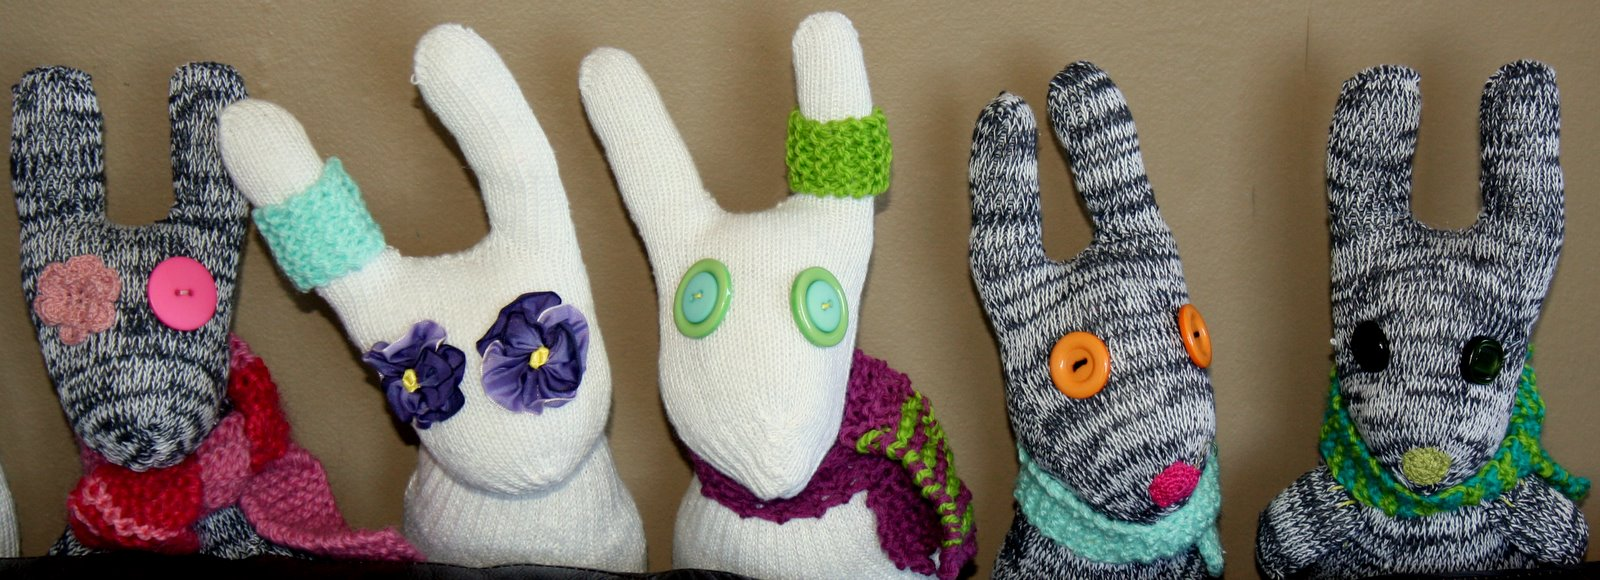 how to make rabbit gloves